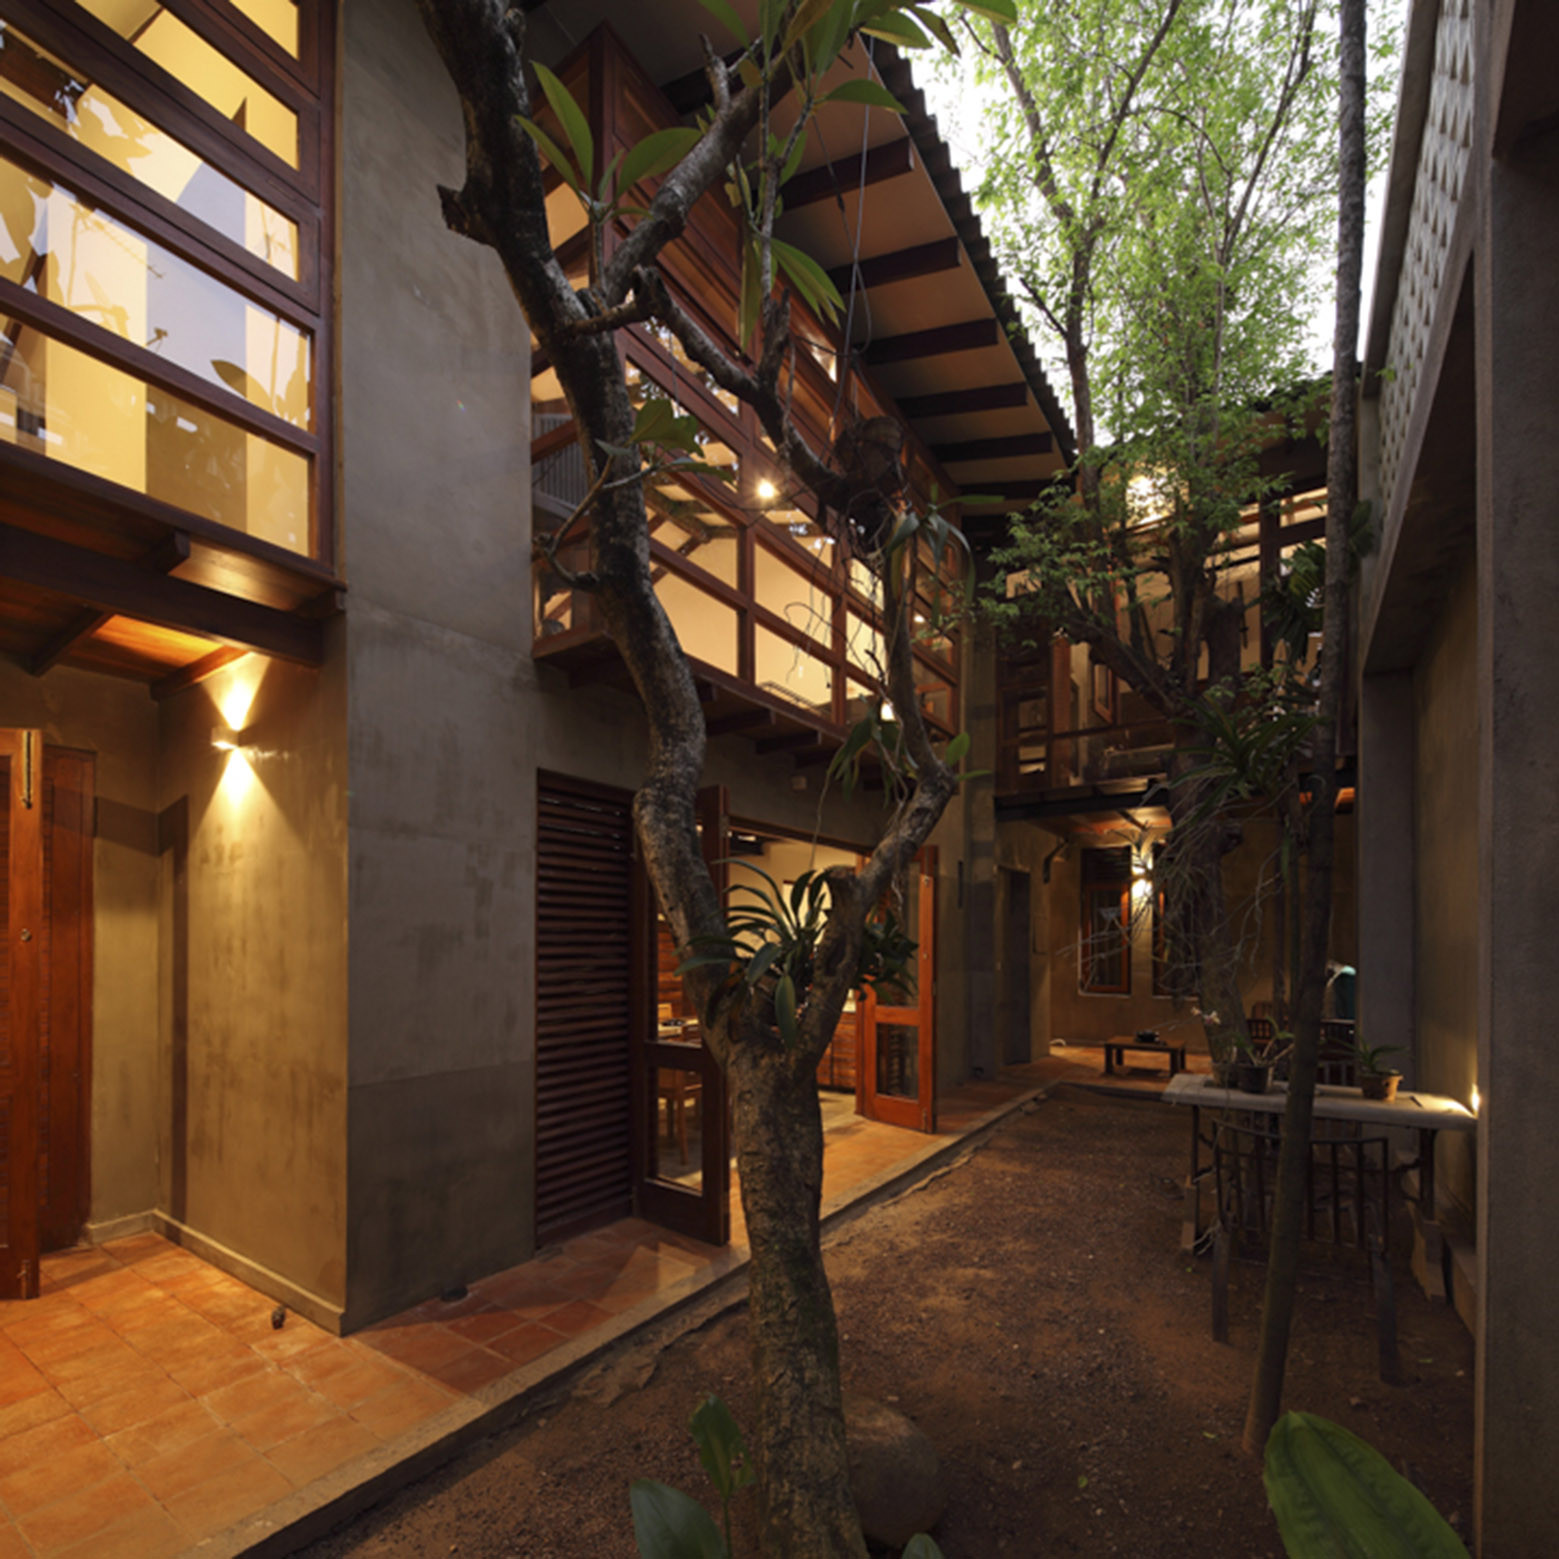 Nugegoda House / Chinthaka Wickramage associates, © Eresh Weerasuriya